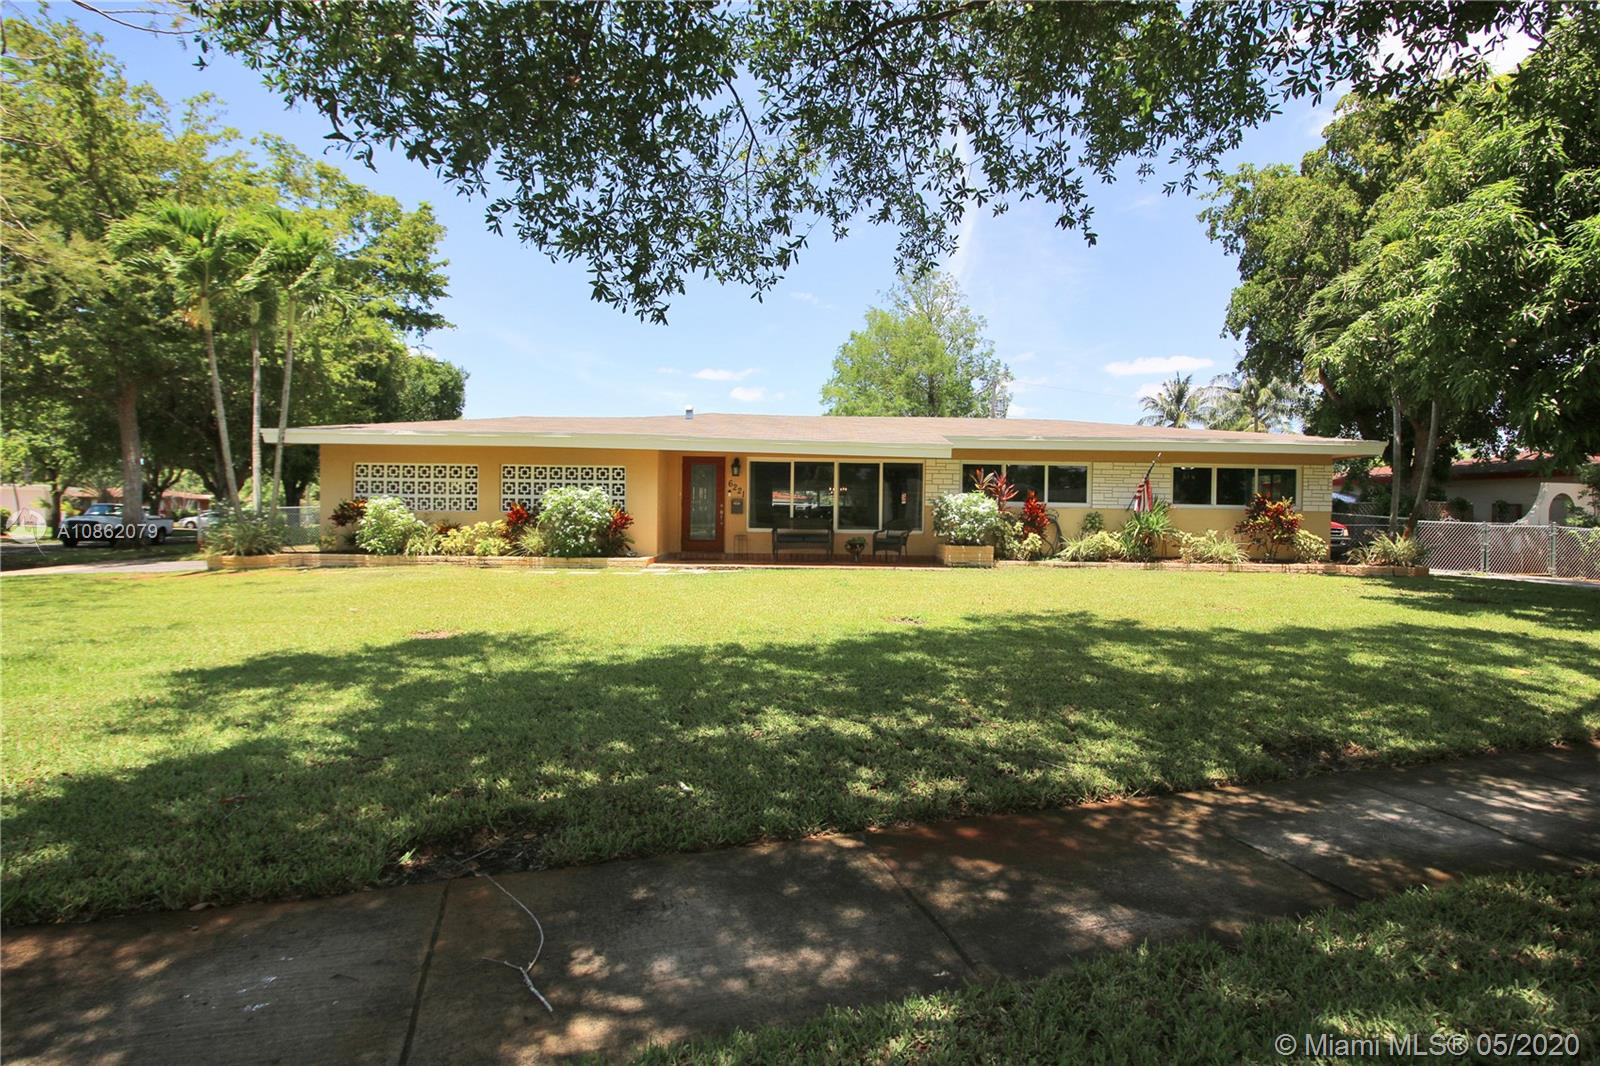 Superb pool home with open floor plan, nested in 1/3 acre corner lot! Newer roof, insulation and AC system replaced 2017. New floor just installed two weeks ago. Most of the home has impact windows. Some openings are not impact. A must see this gem in highly desirable Plantation Park. Entertain your friends and family on the large pool deck. Pride of ownership! Sellers can not close until August 1st or later. Buyer must be prepared to wait. Cash offers comes come with proof of funds. Financed offers must come with Pre-approval and DU. Free appraisal with prefered lender. Virtual Tour: https://www.zillow.com/view-3d-home/4f801691-0494-482e-b7da-2e6dbffb7beb?setAttribution=mls&wl=true